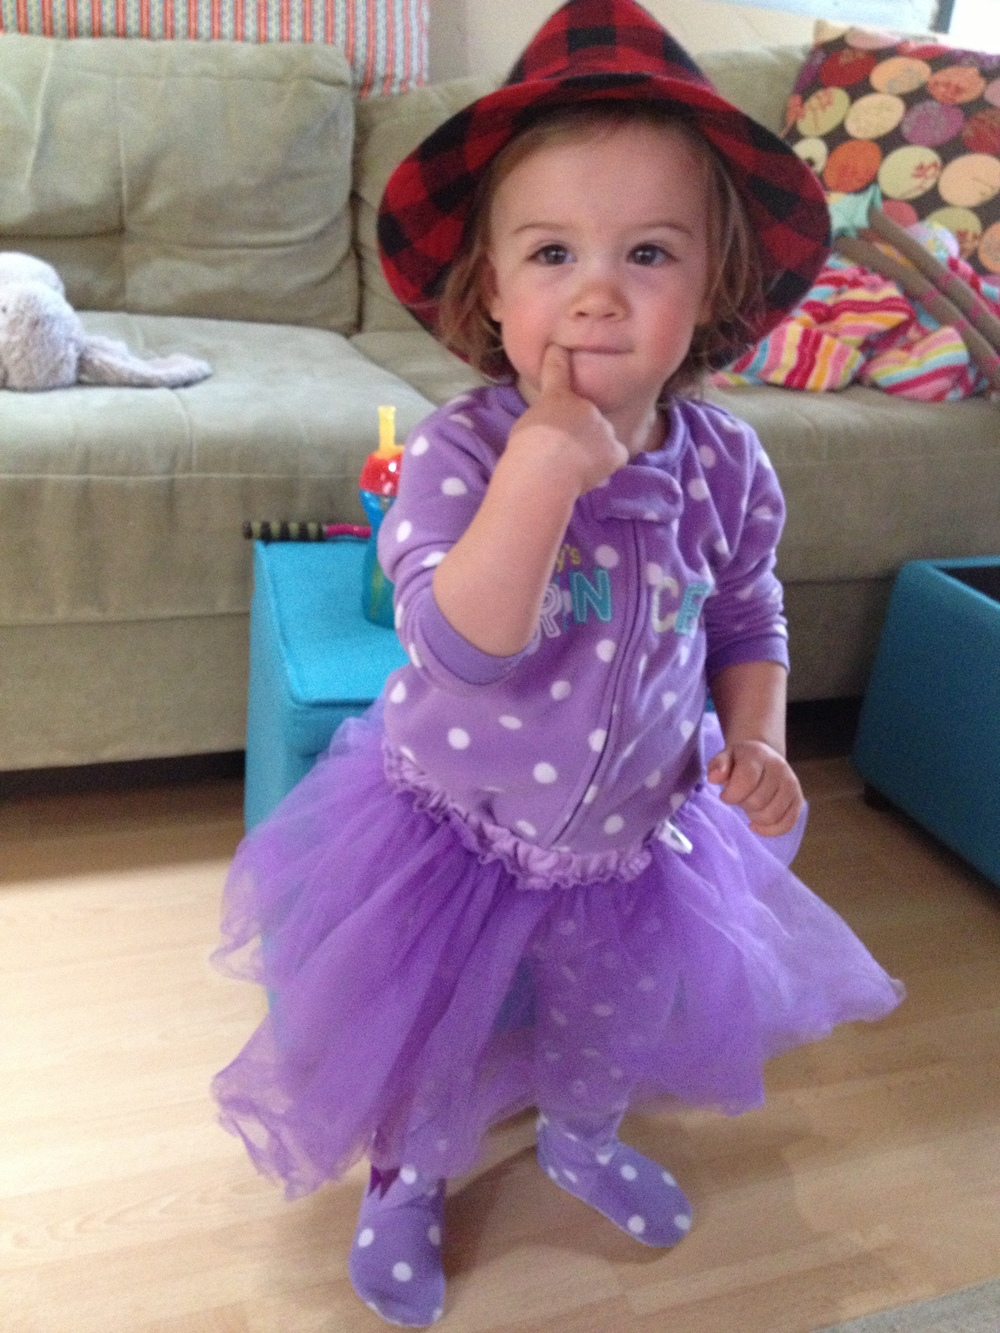 morning activities...footed pjs, tutu, hat, dancing